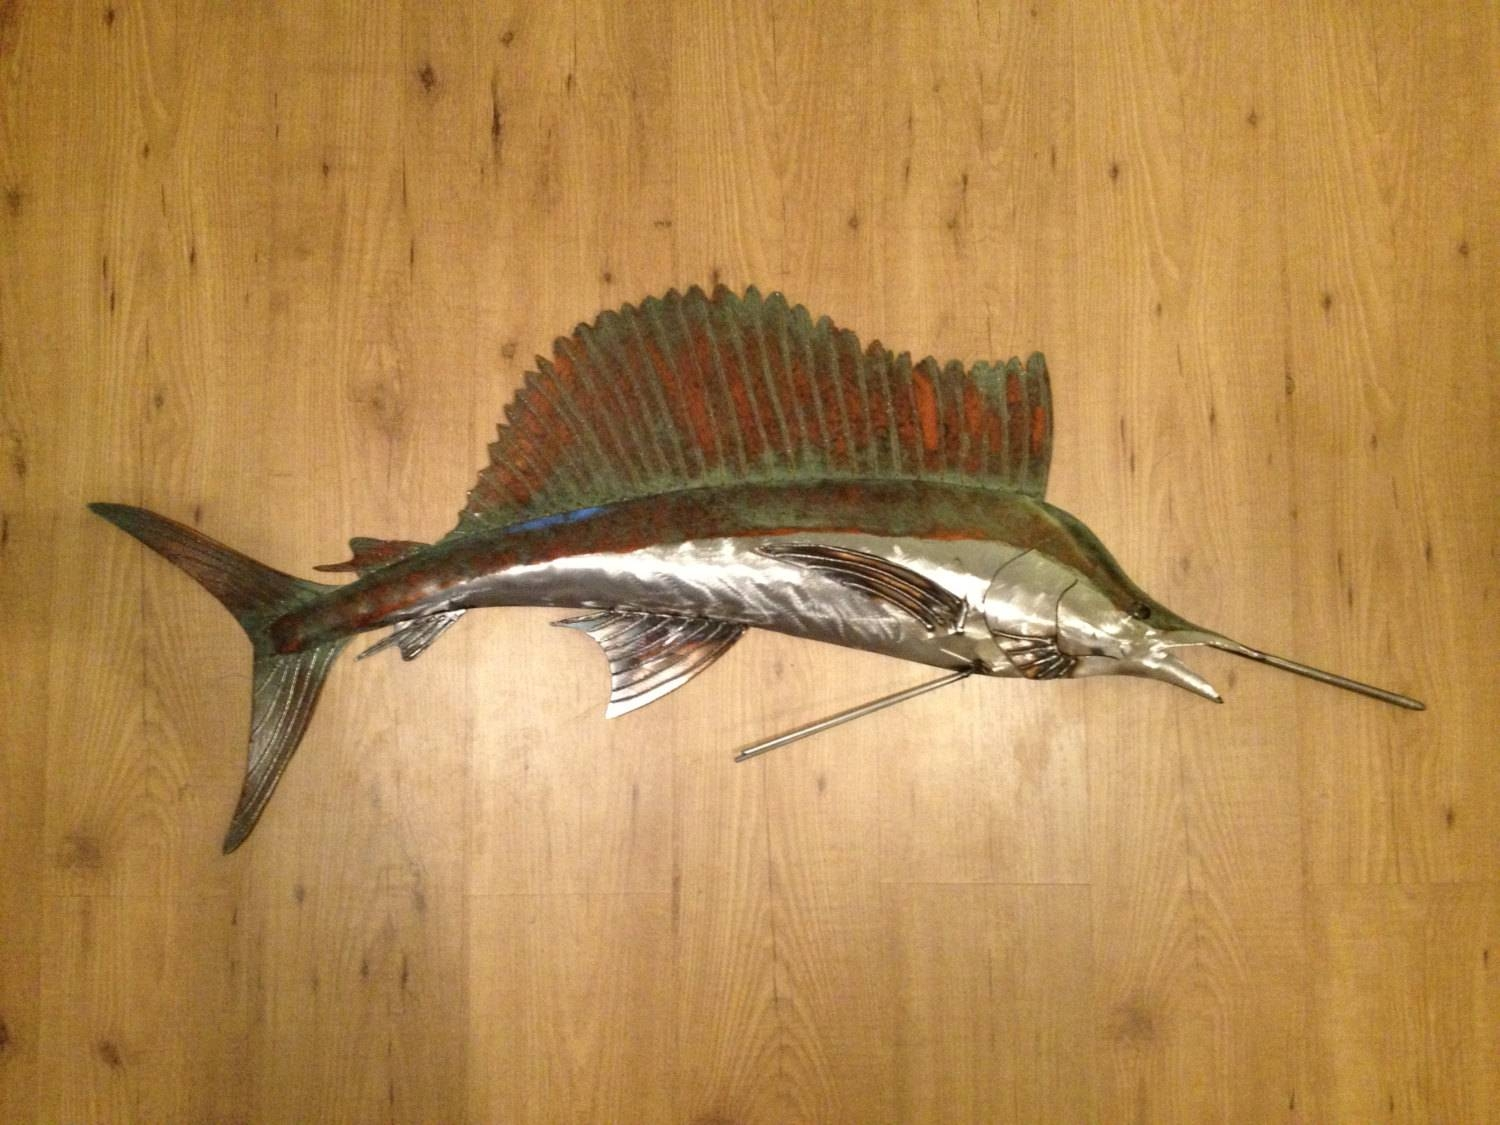 Sailfish 48in Metal Wall Art Fish Sculpture Handmade Beach Within Most Up To Date Handmade Metal Wall Art (View 12 of 20)